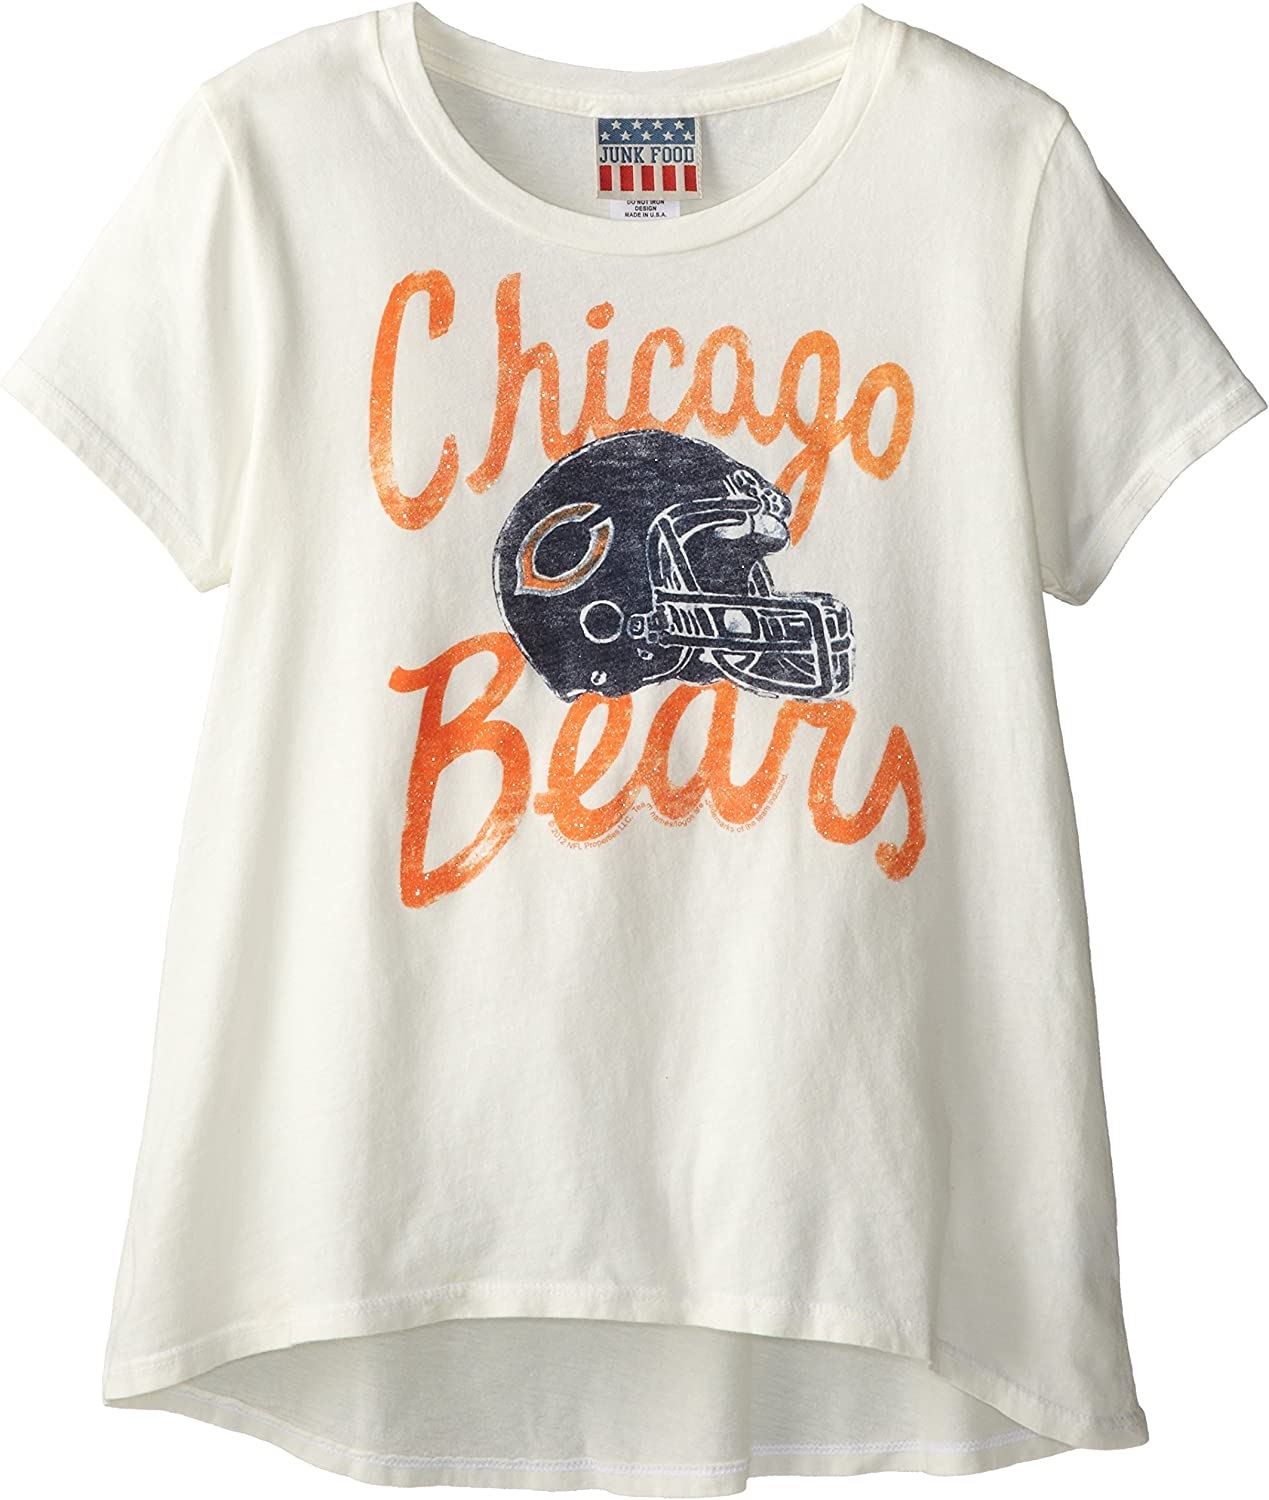 Junk Food NFL Girl's Youth Game Day Glitter Tee